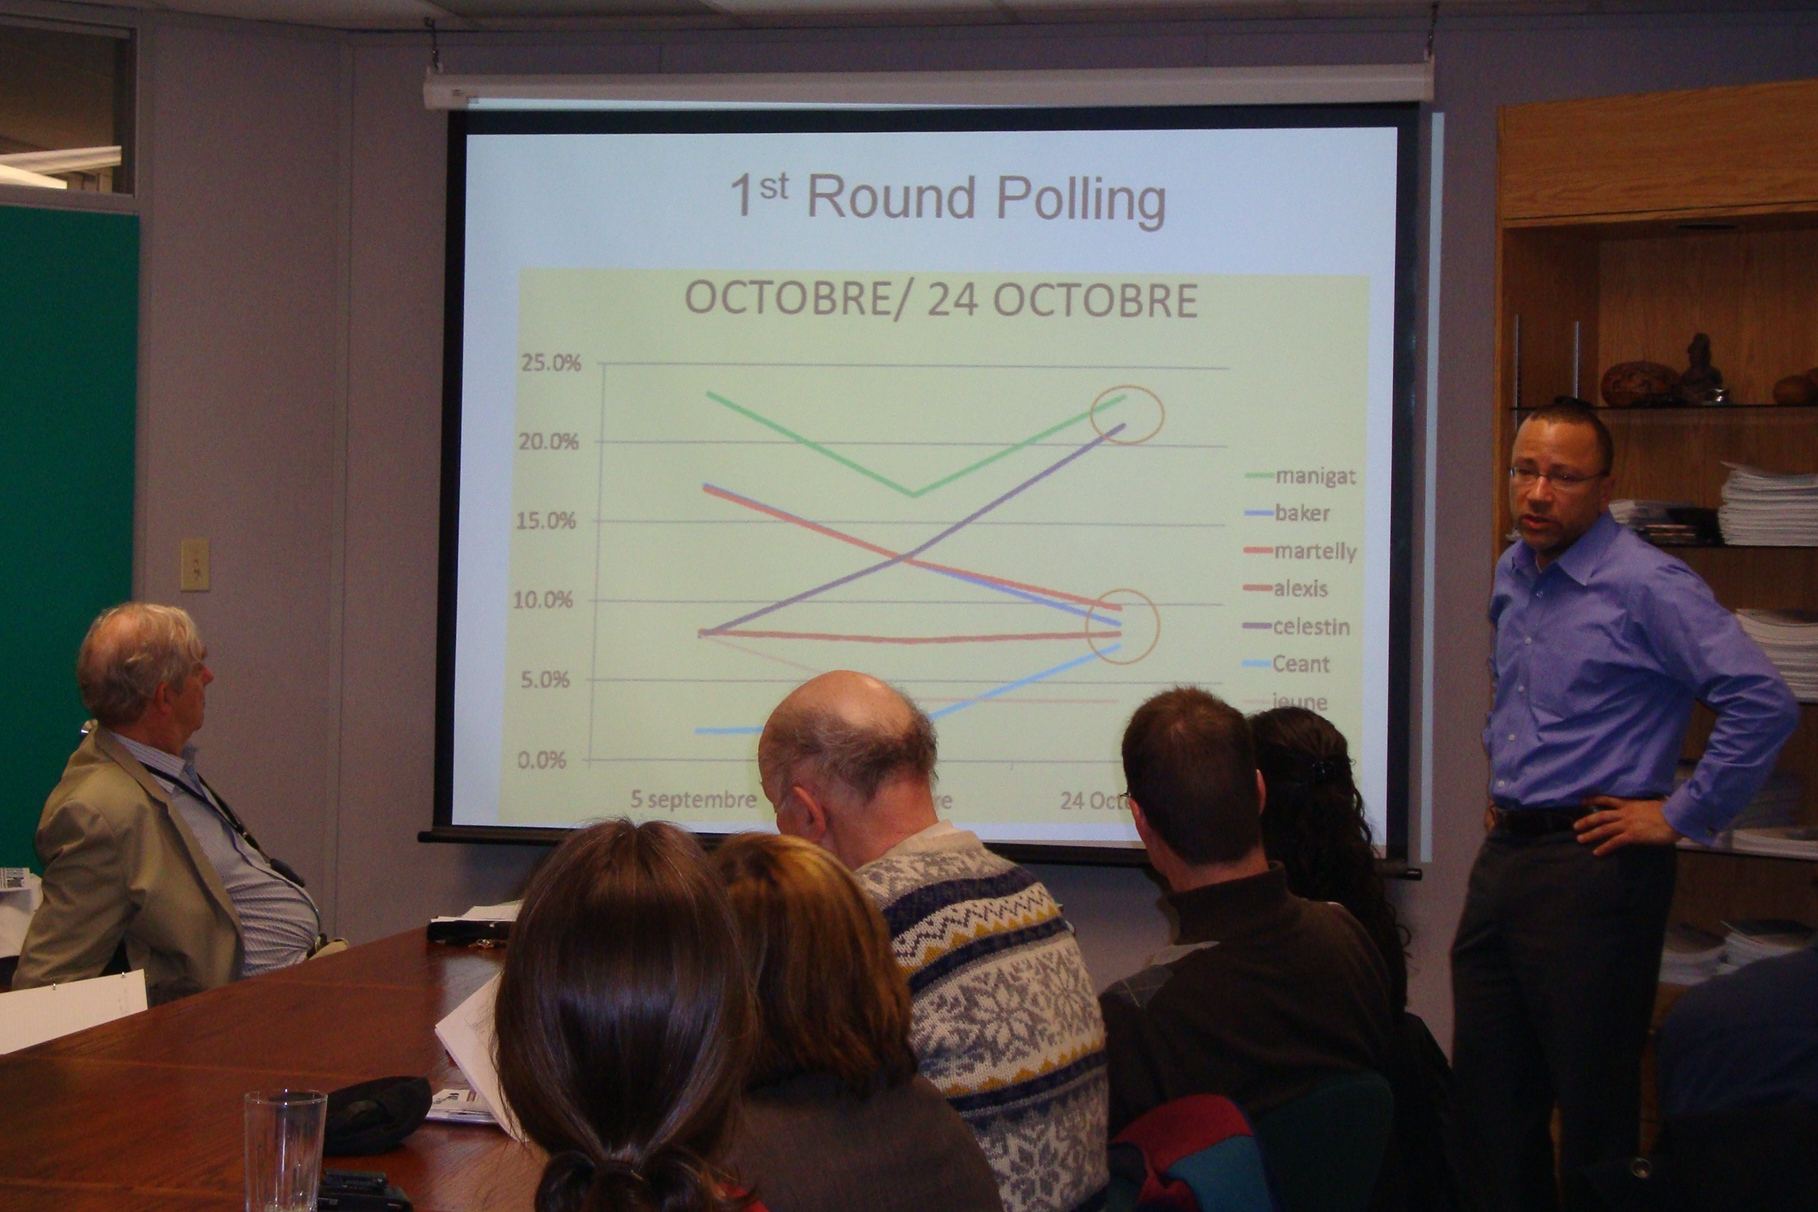 FOCAL Executive Director Carlo Dade interprets a graph showing first round polling results for Haiti election as attendees look on